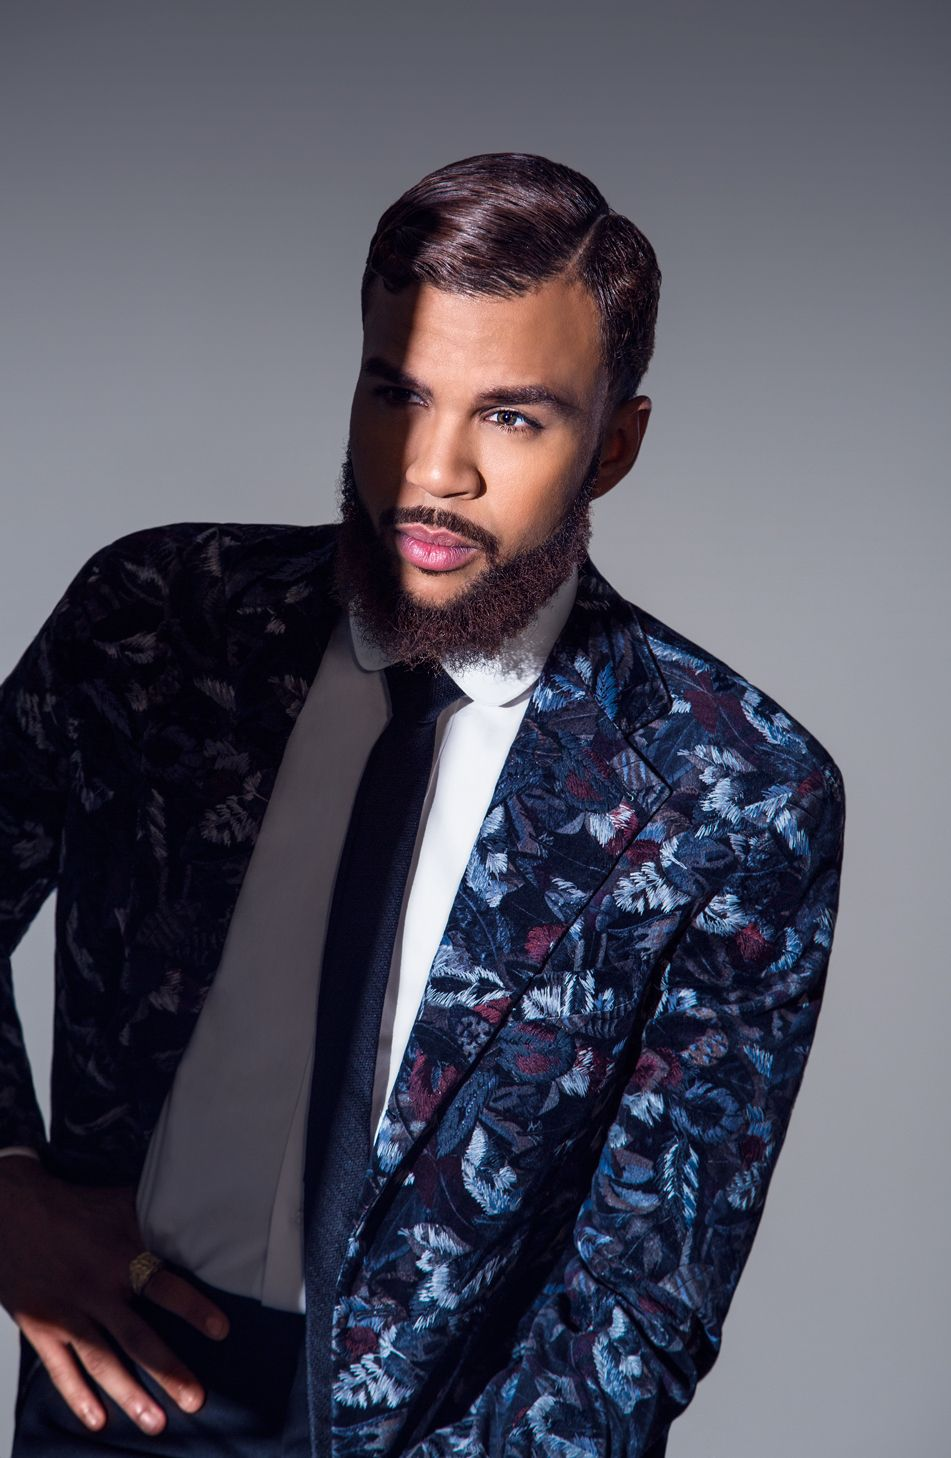 Image result for Jidenna suit